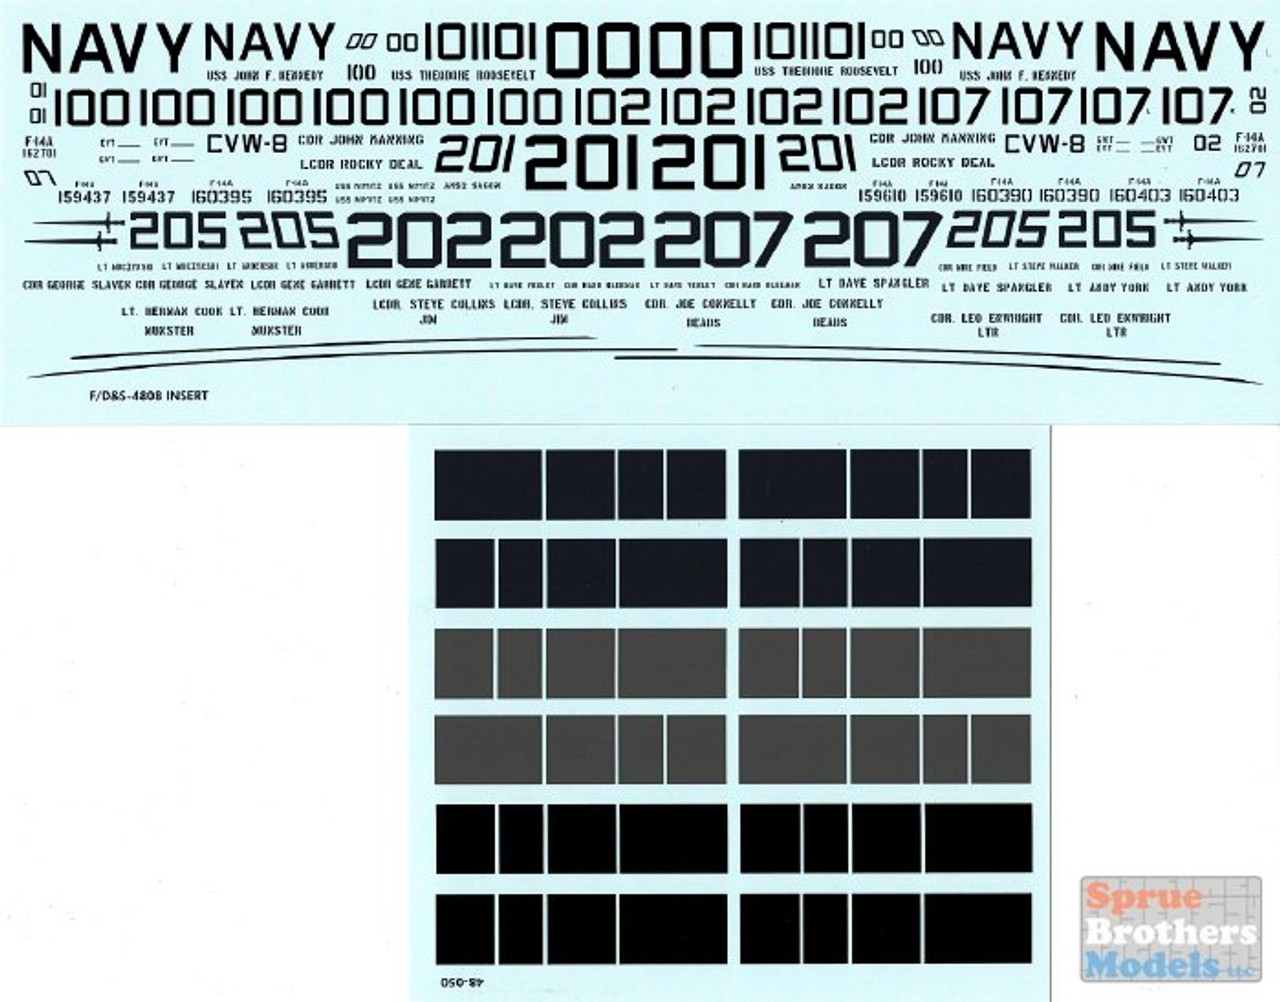 FURDS4808 1:48 Furball Aero Design F-14A Tomcat 'Colors and Markings of US Navy Tomcats' Part One VF-32 VF-41